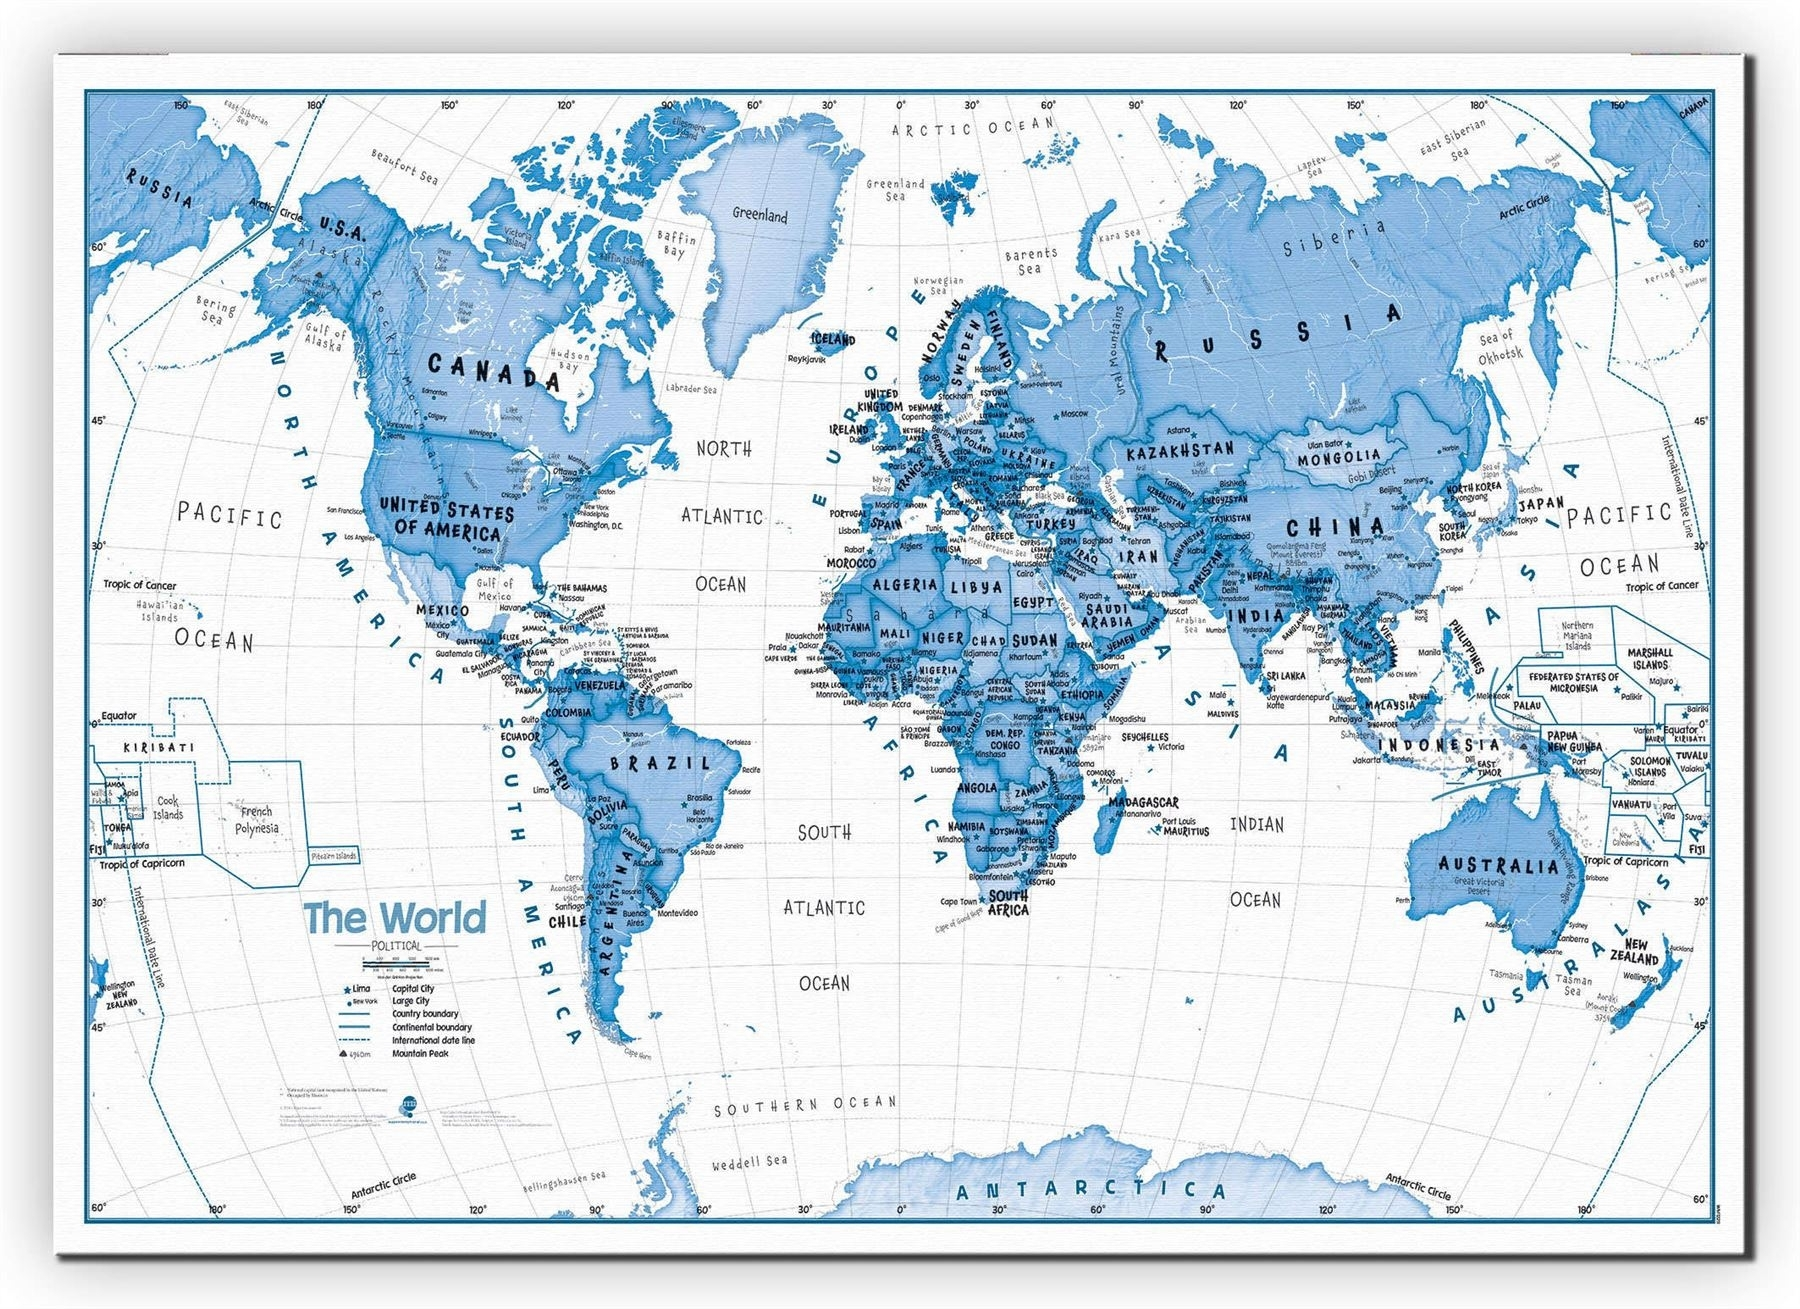 Children's Art Map Of The World Blue Poster Wall Art With Size Inside World Map Wall Art For Kids (View 12 of 20)